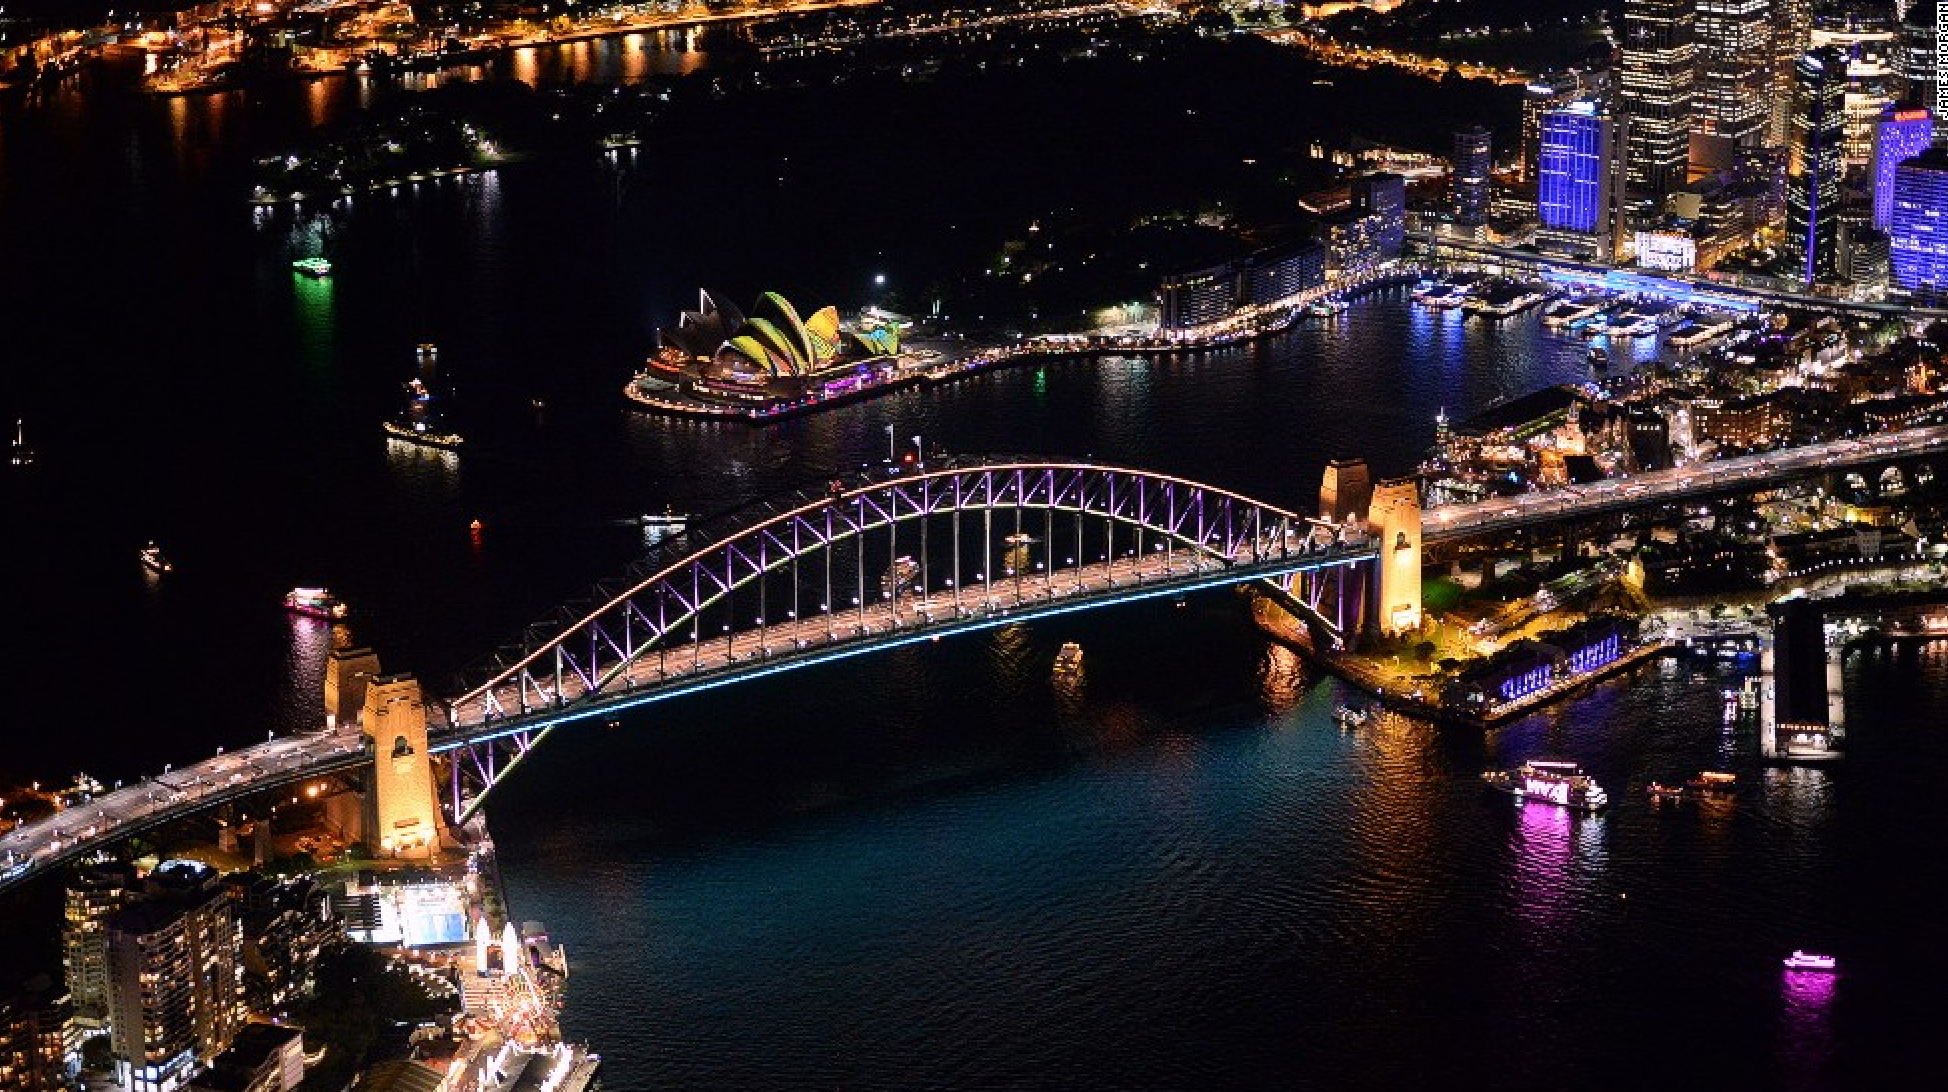 vivid sydney at night